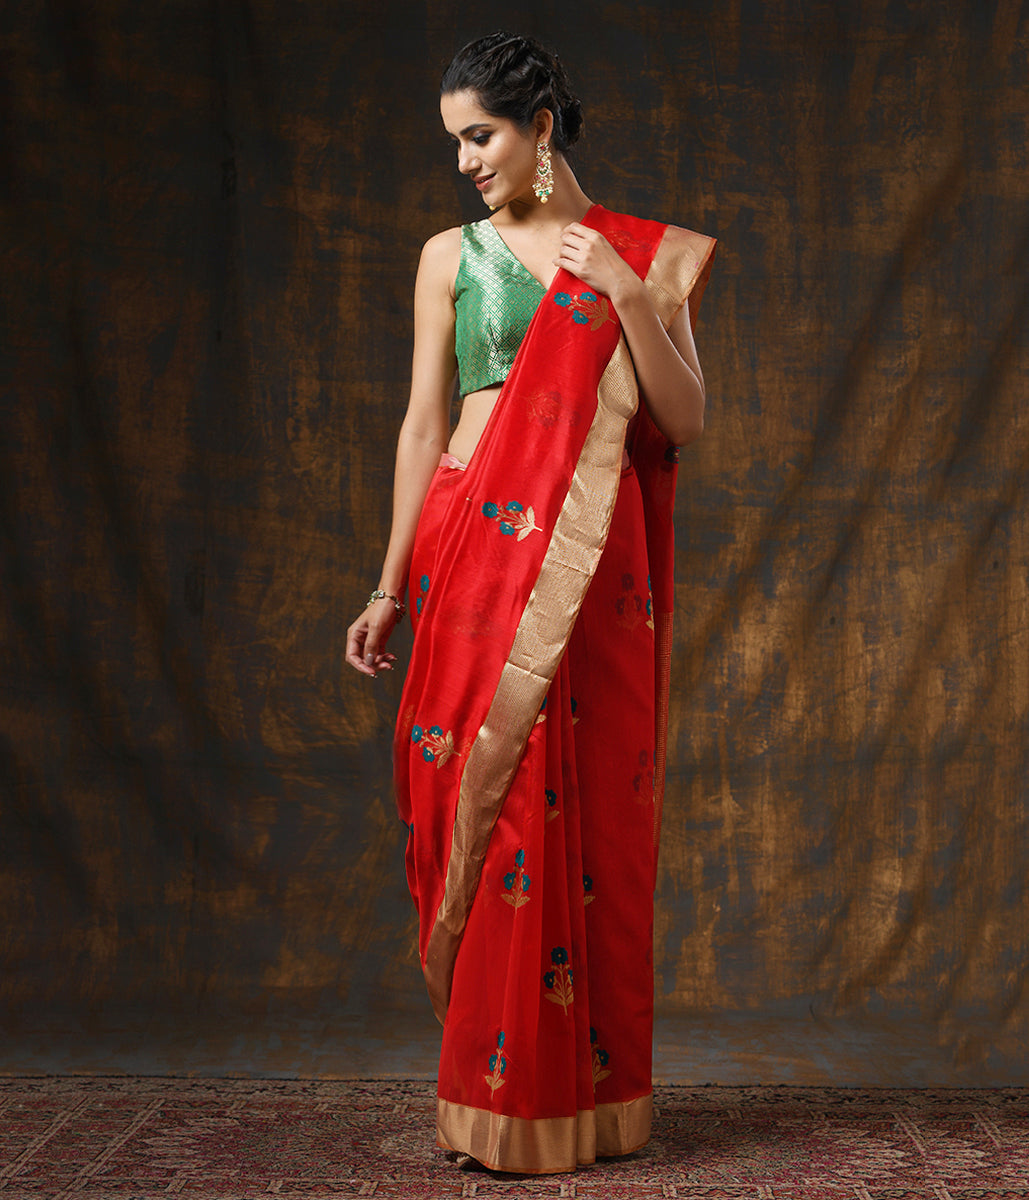 Handwoven Red Chanderi Silk Saree with Floral Motifs and Heavy Gold Zari Border